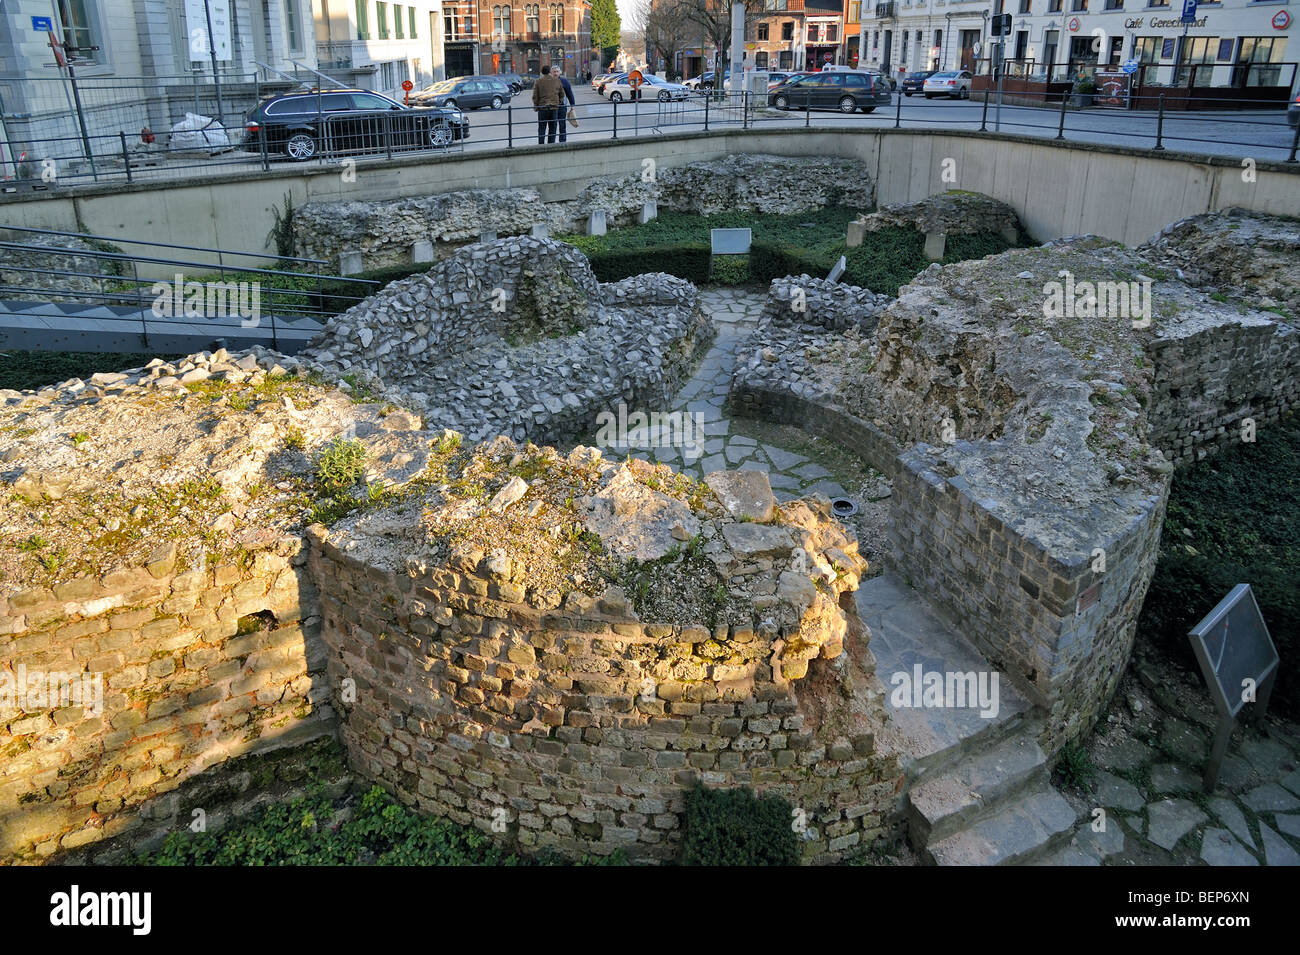 Archaeological site showing foundations of Roman tower, Tongeren, Belgium - Stock Image